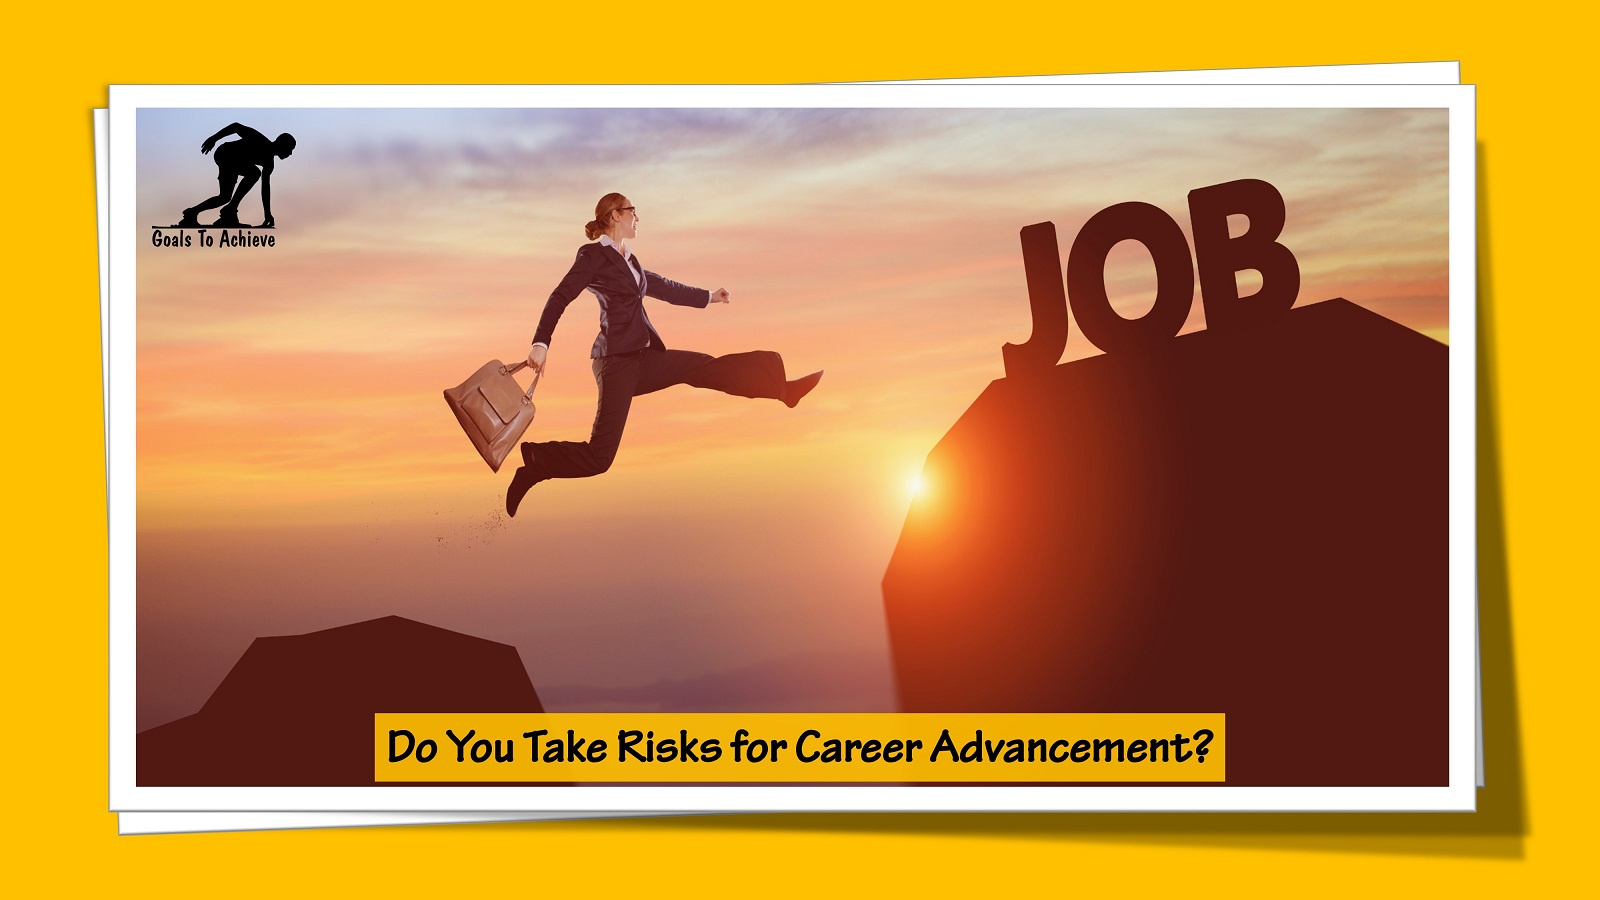 Do You Take Risks for Career Advancement?